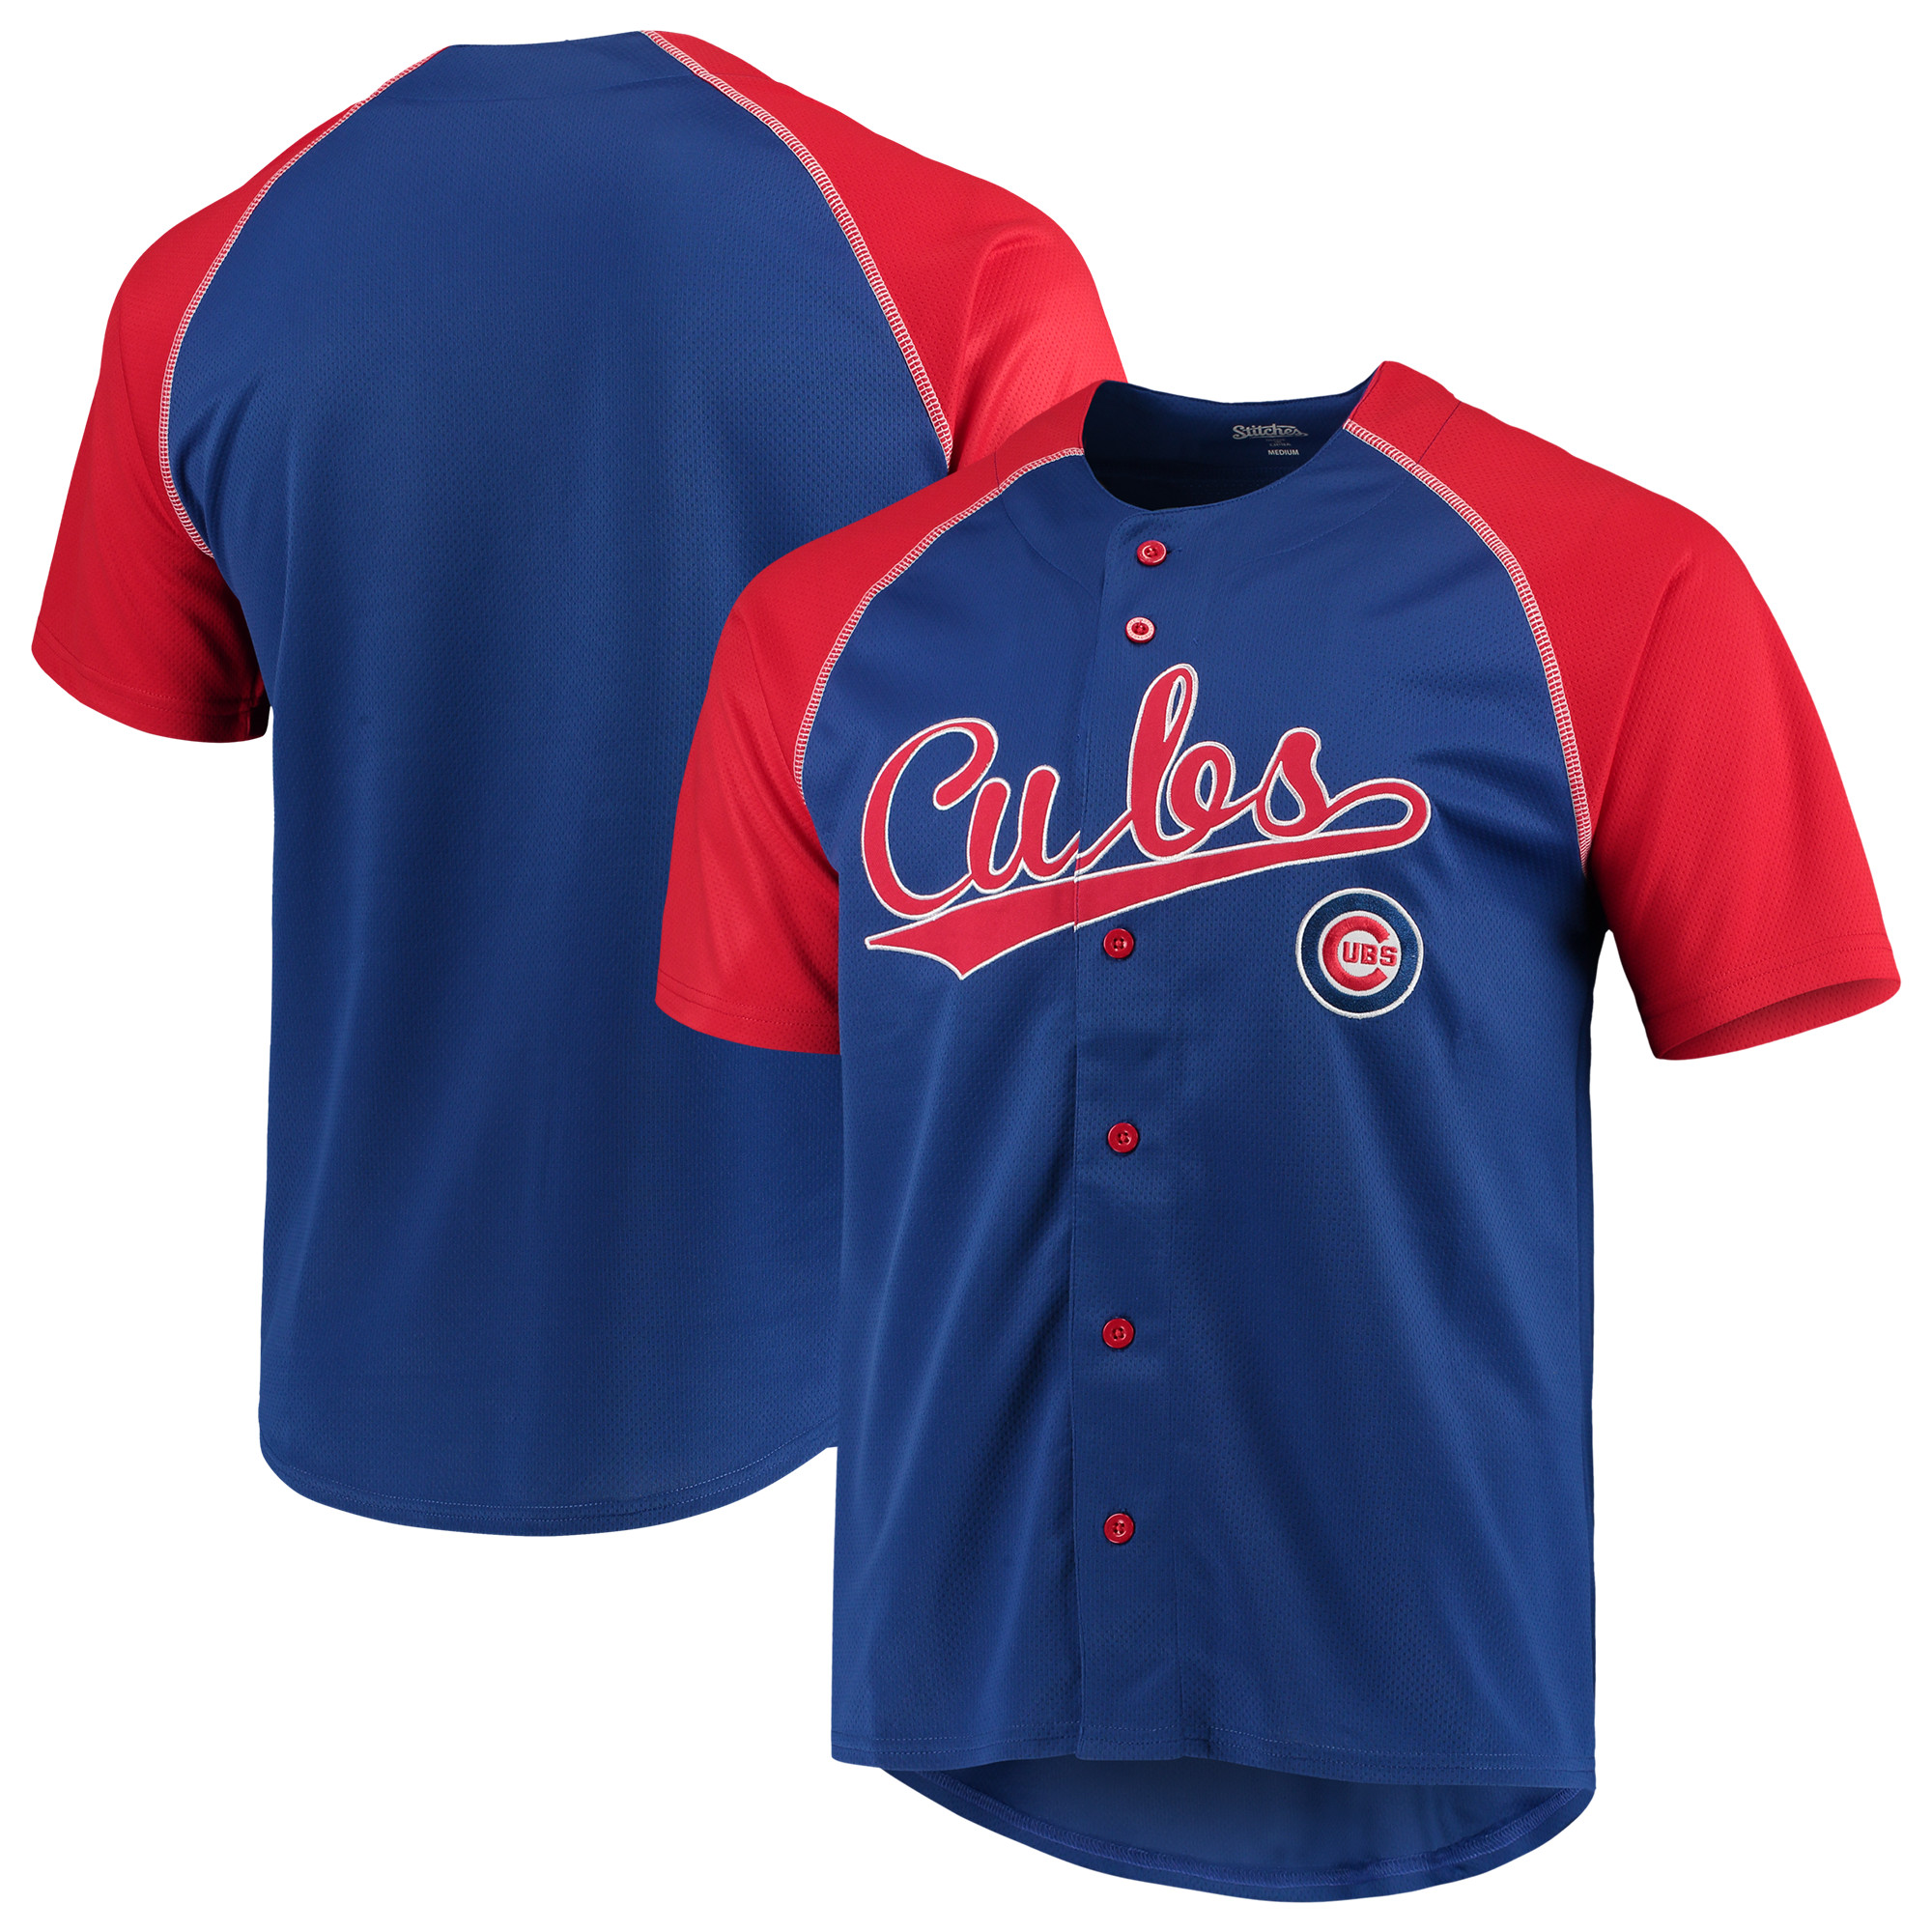 Chicago Cubs Stitches Team Jersey - Royal/Red